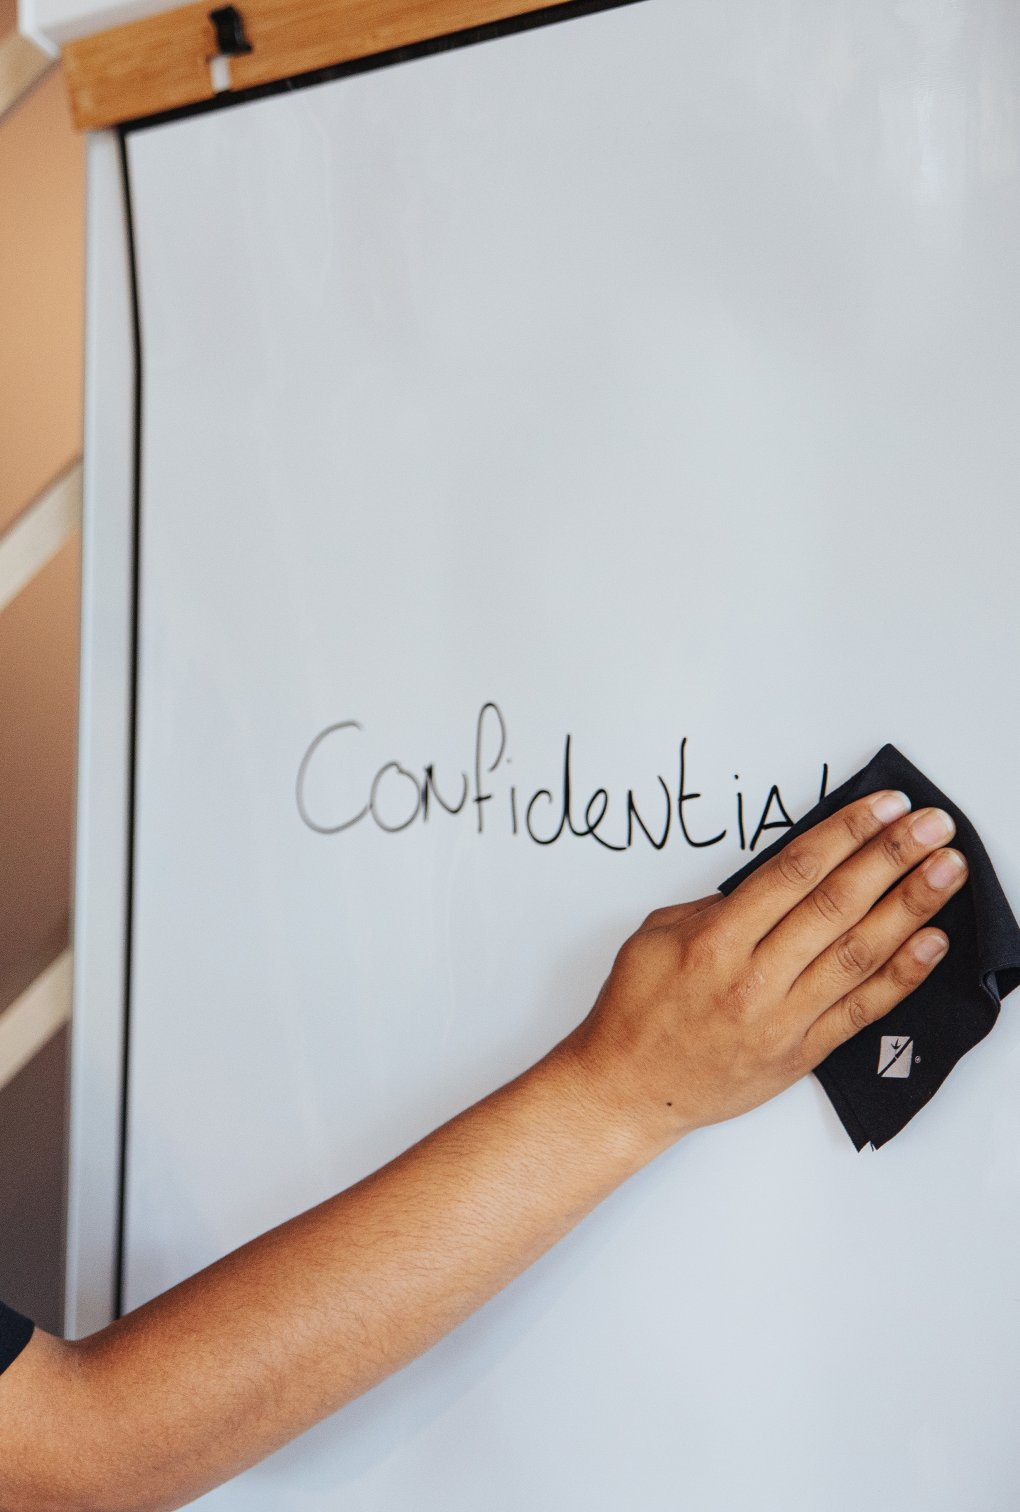 Flip-ever and confidentiality